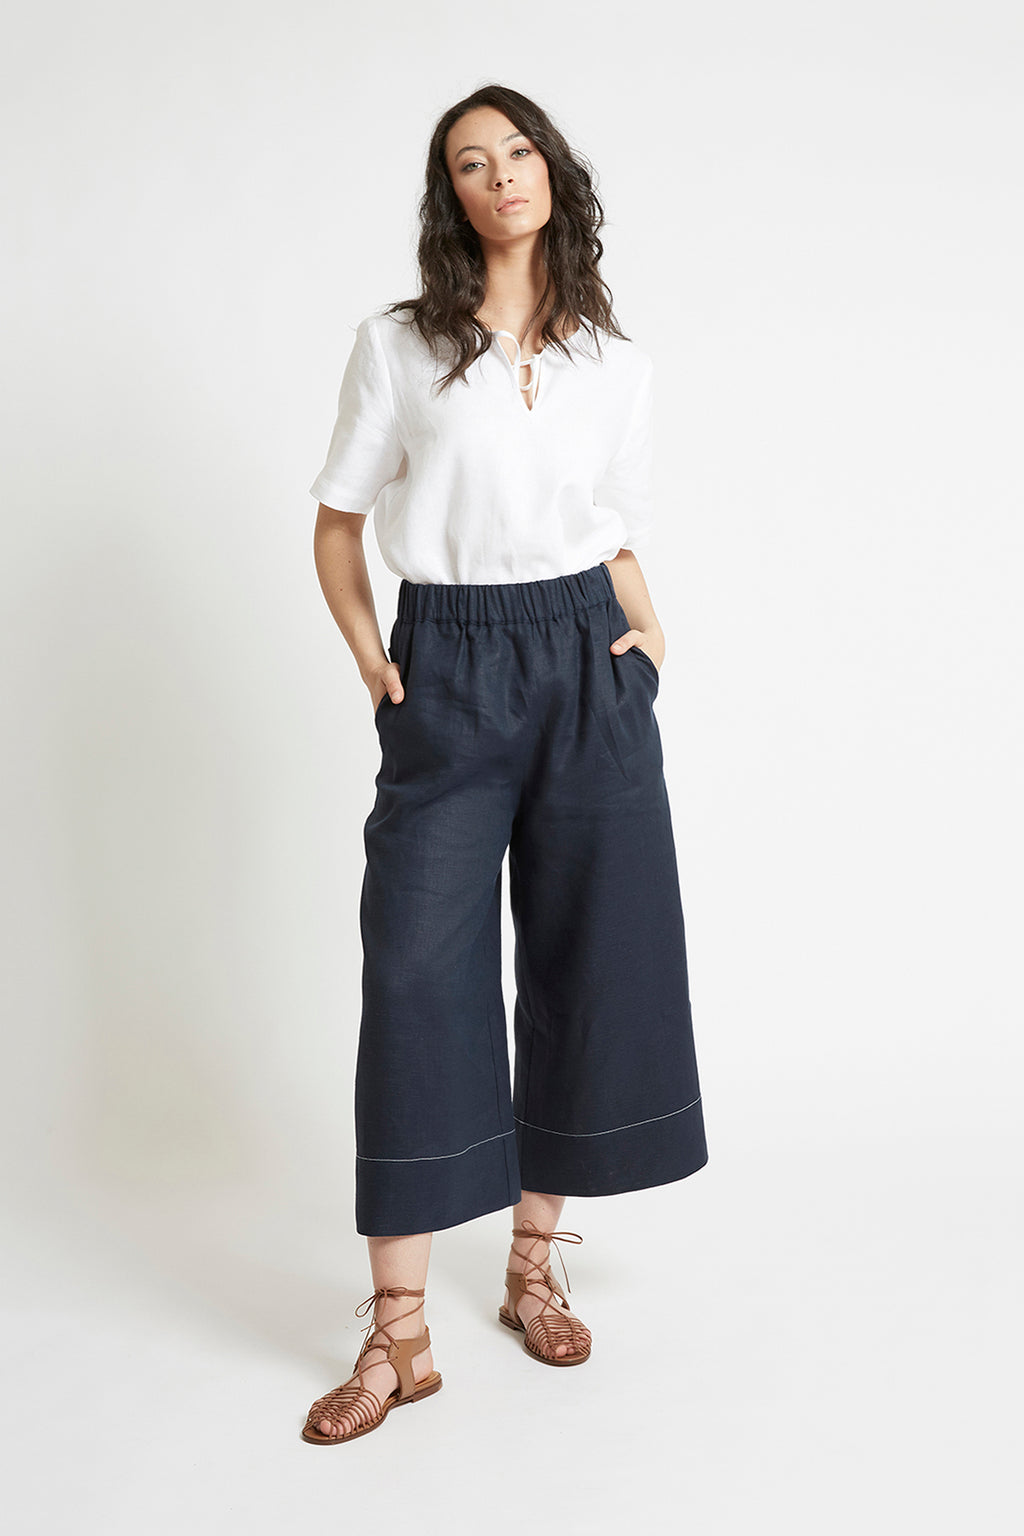 Navy Linen Wide Leg Pant Pants Ethical Sustainable Vegan Organic Australian fashion womens clothes